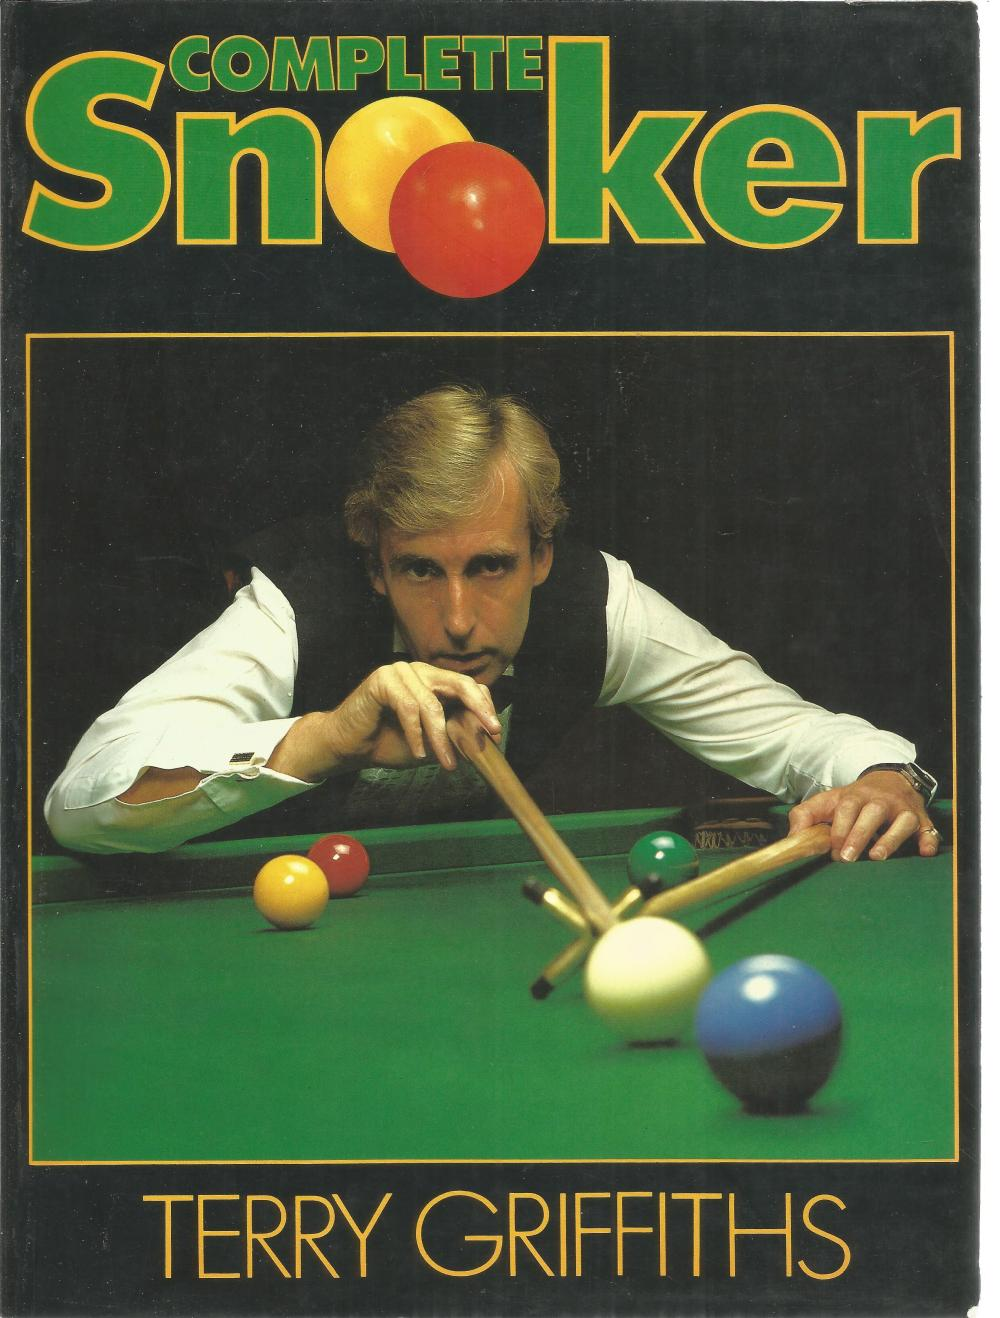 Complete Snooker by Terry Griffiths. Unsigned large paperback book without dust jacket published